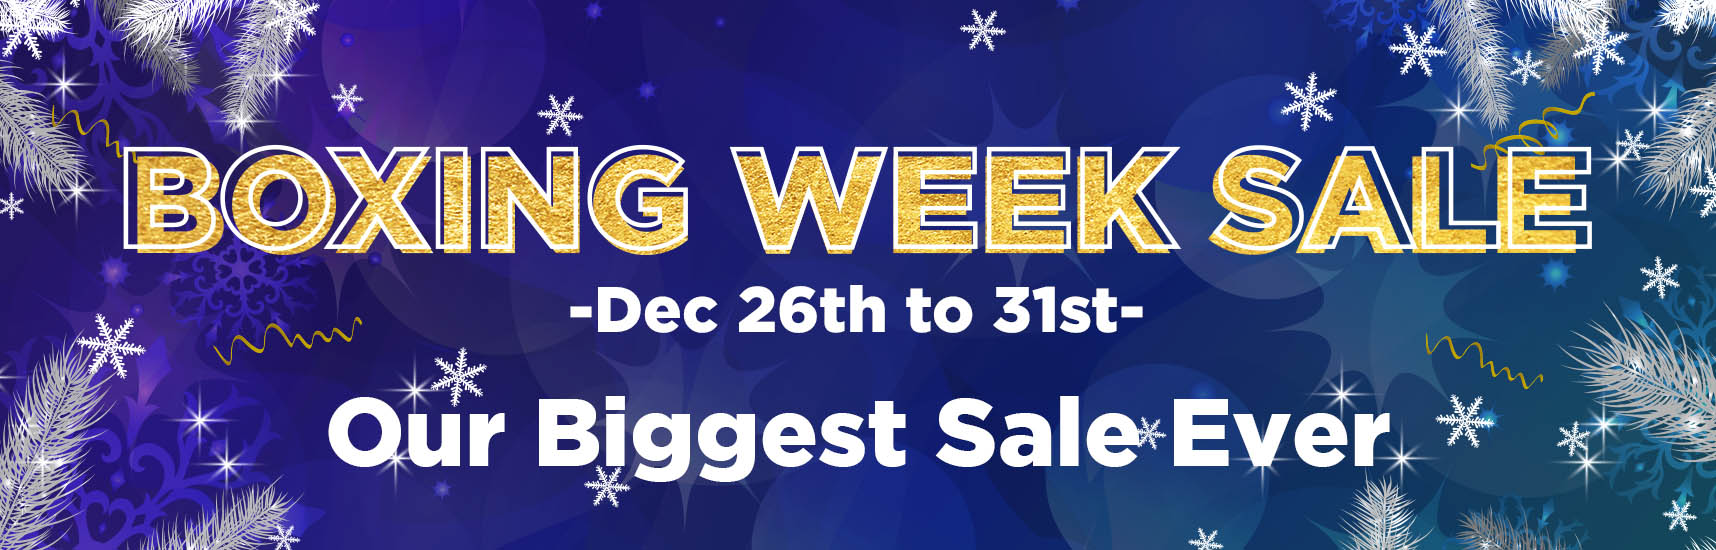 Boxing Week Sale - Dec 26 to 31, Be the first to access our biggest sale ever.